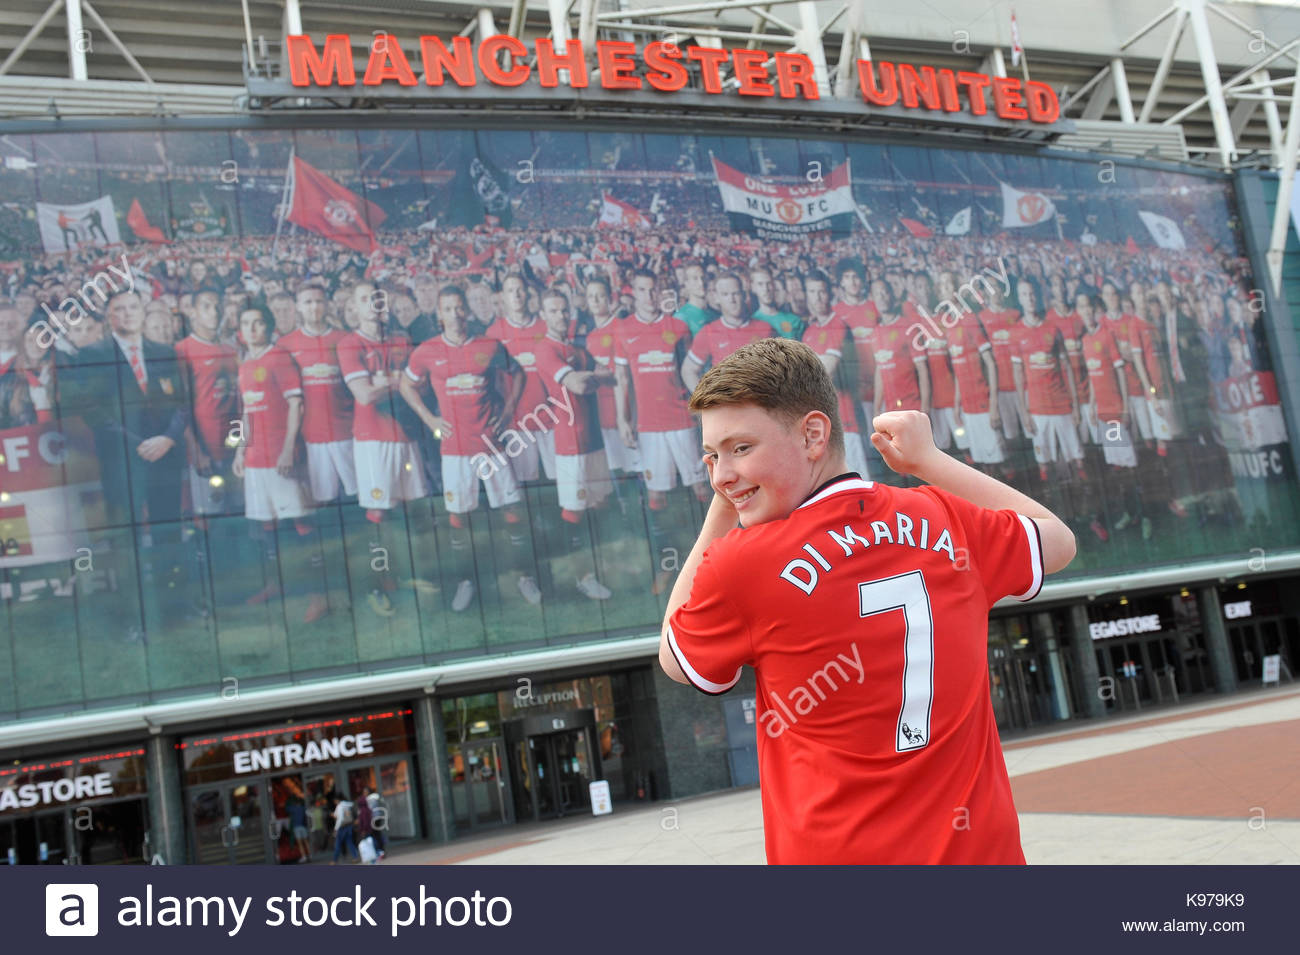 879a78c0a Manchester United Old Shirts For Sale – EDGE Engineering and ...